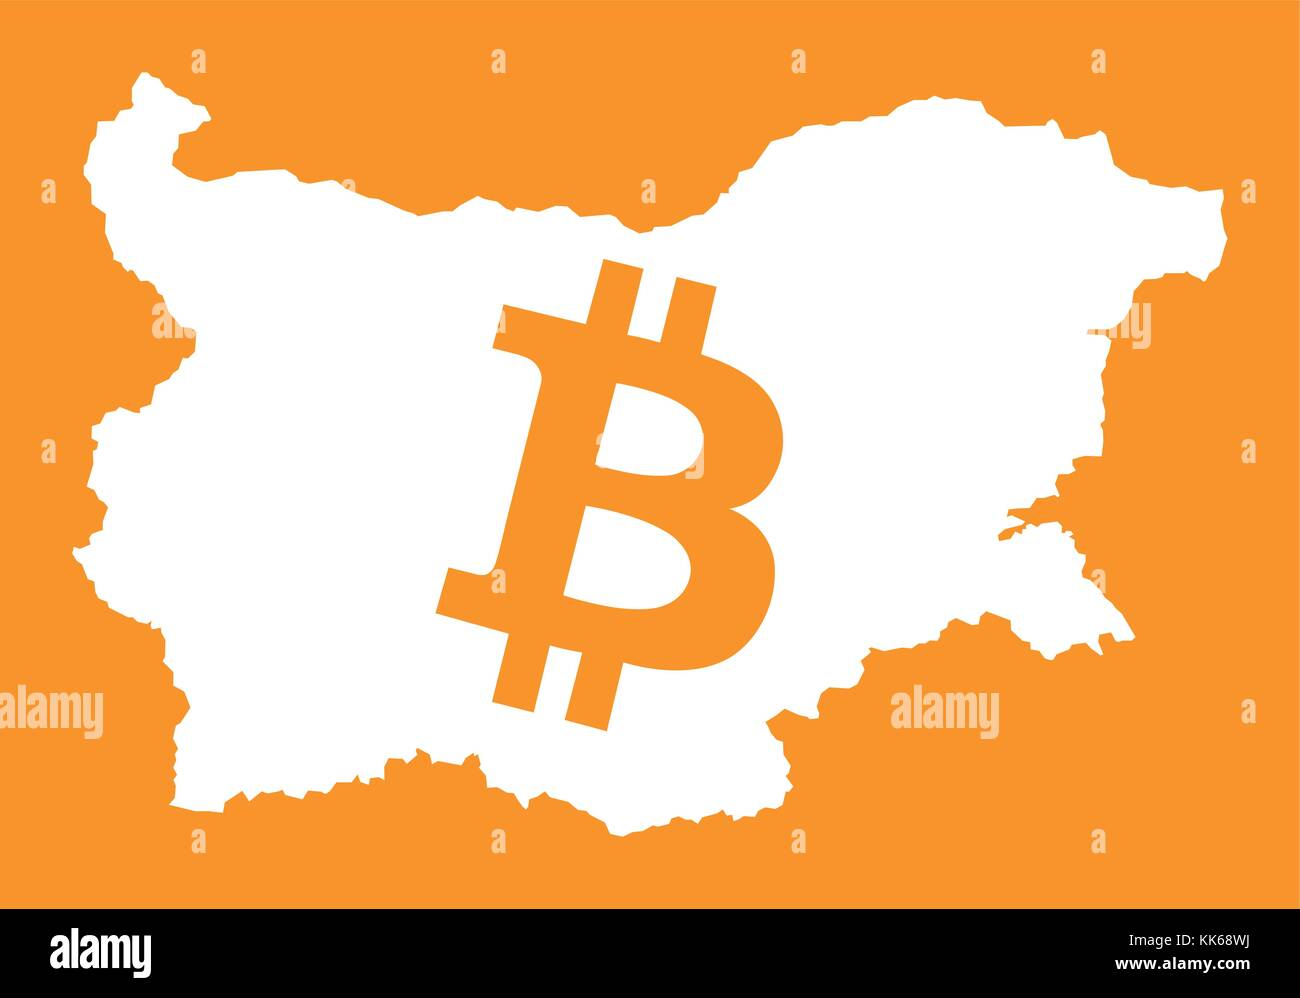 Exchange currency bulgaria stock photos exchange currency bulgaria map with bitcoin crypto currency symbol illustration stock image biocorpaavc